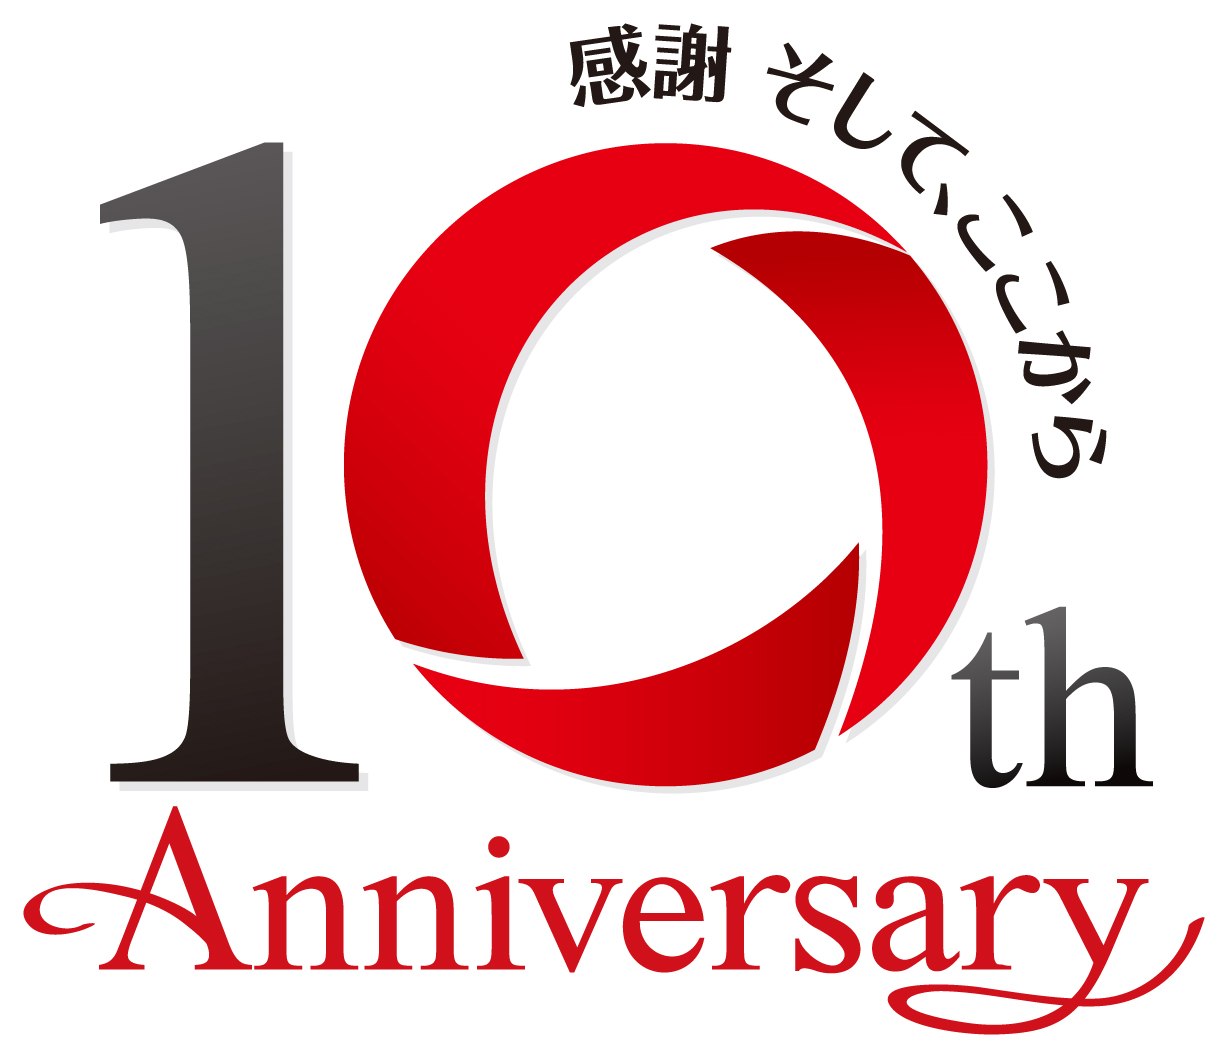 http://p-fs.co.jp/wordpress/wp-content/uploads/2017/11/logo-01.jpg